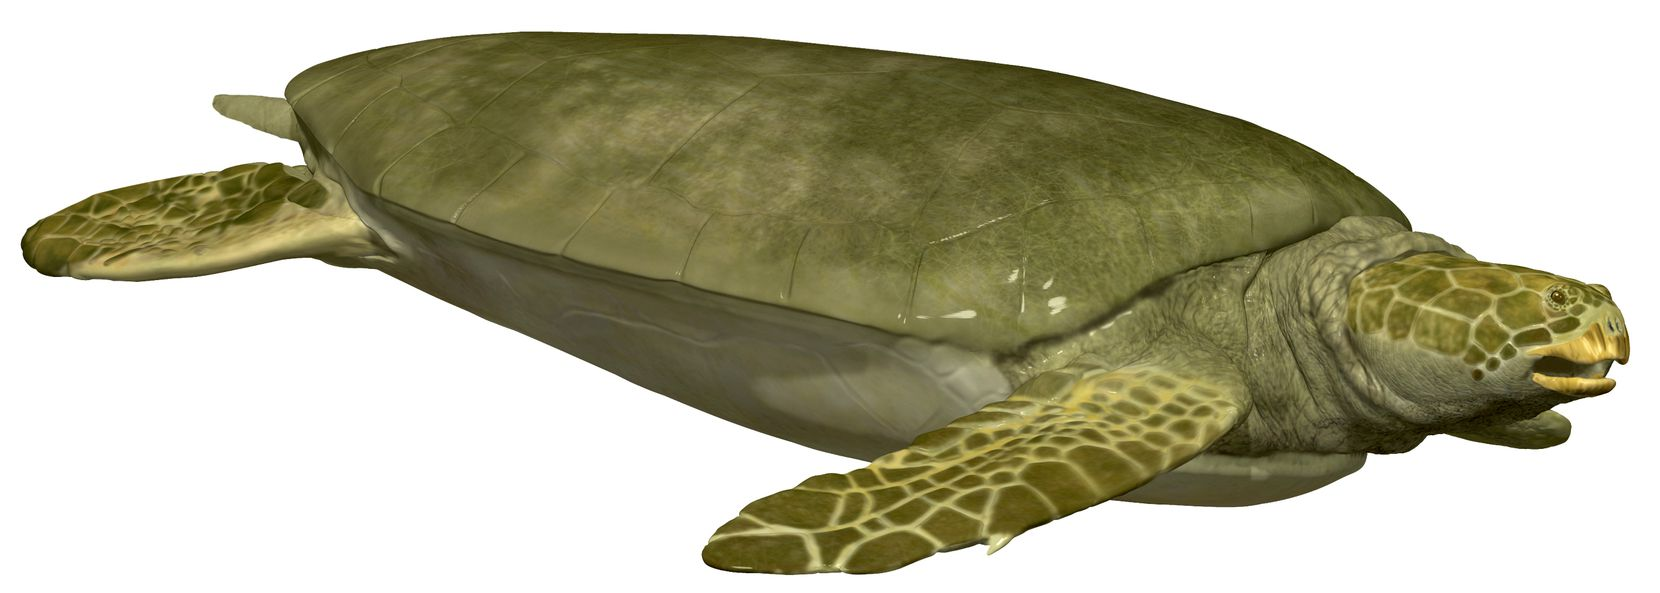 An artist'€™s rendering of what the ancient sea turtle Angolachelys mbaxi might have looked like when it was alive. Sea turtles have been part of ocean ecosystems for over 150 million years and still swim along Angola'€™s coast today. This extinct species, Angolachelys mbaxi, is the South Atlantic's oldest species of sea turtle. Like some modern sea turtles, it used the flat surface of its strong jaws to crush hard-shelled prey.